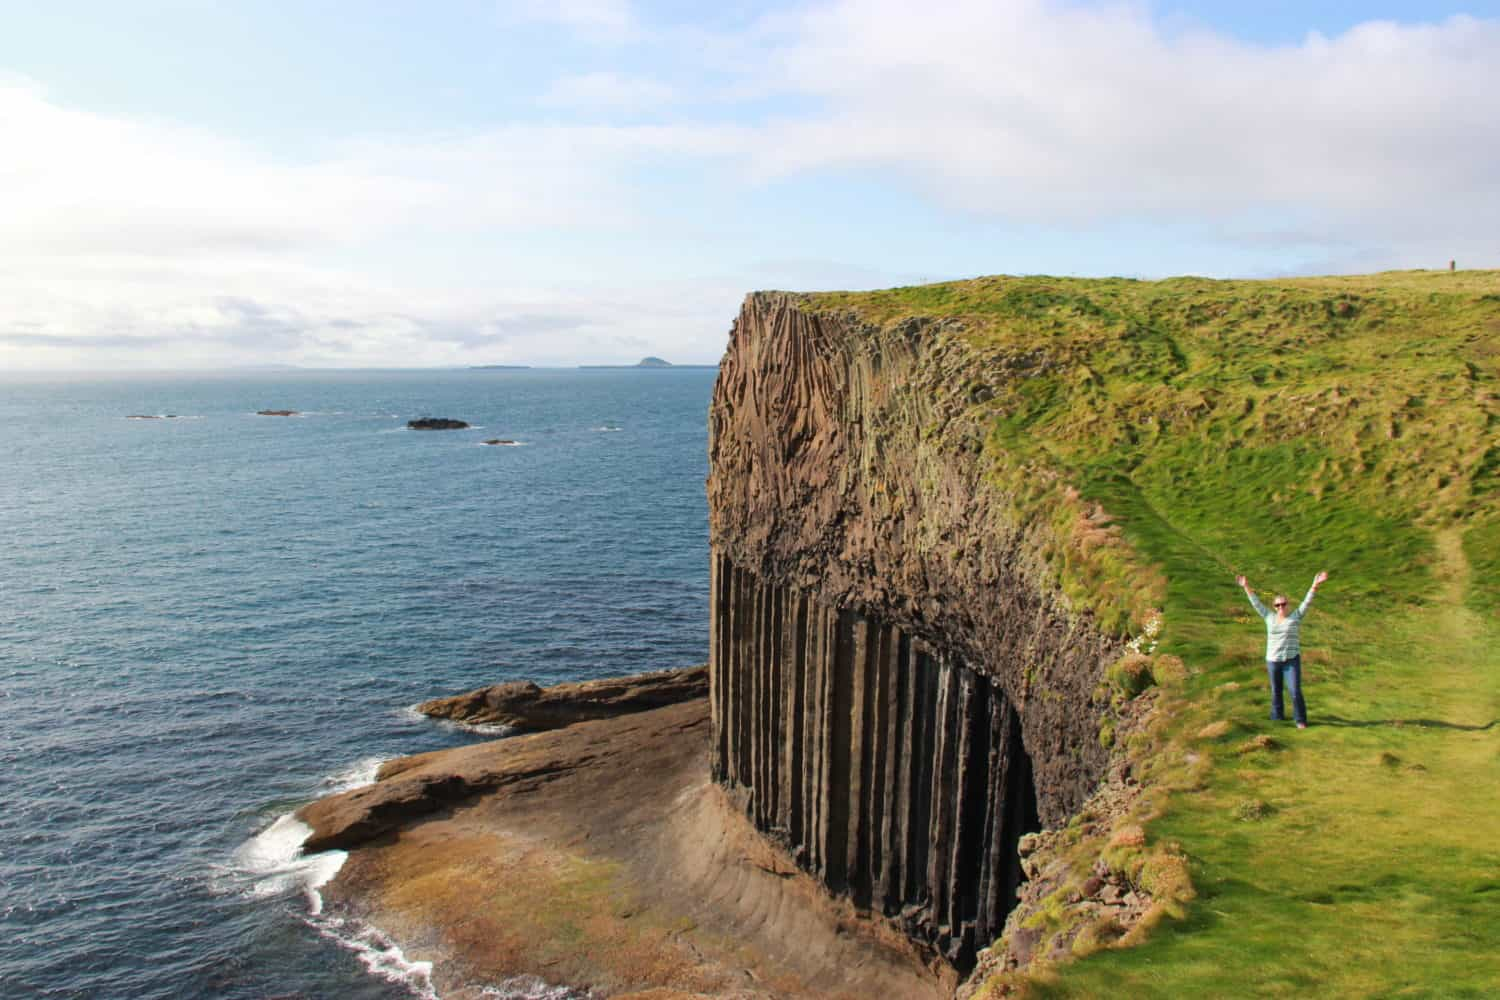 Atop Scotland's Isle of Staffa